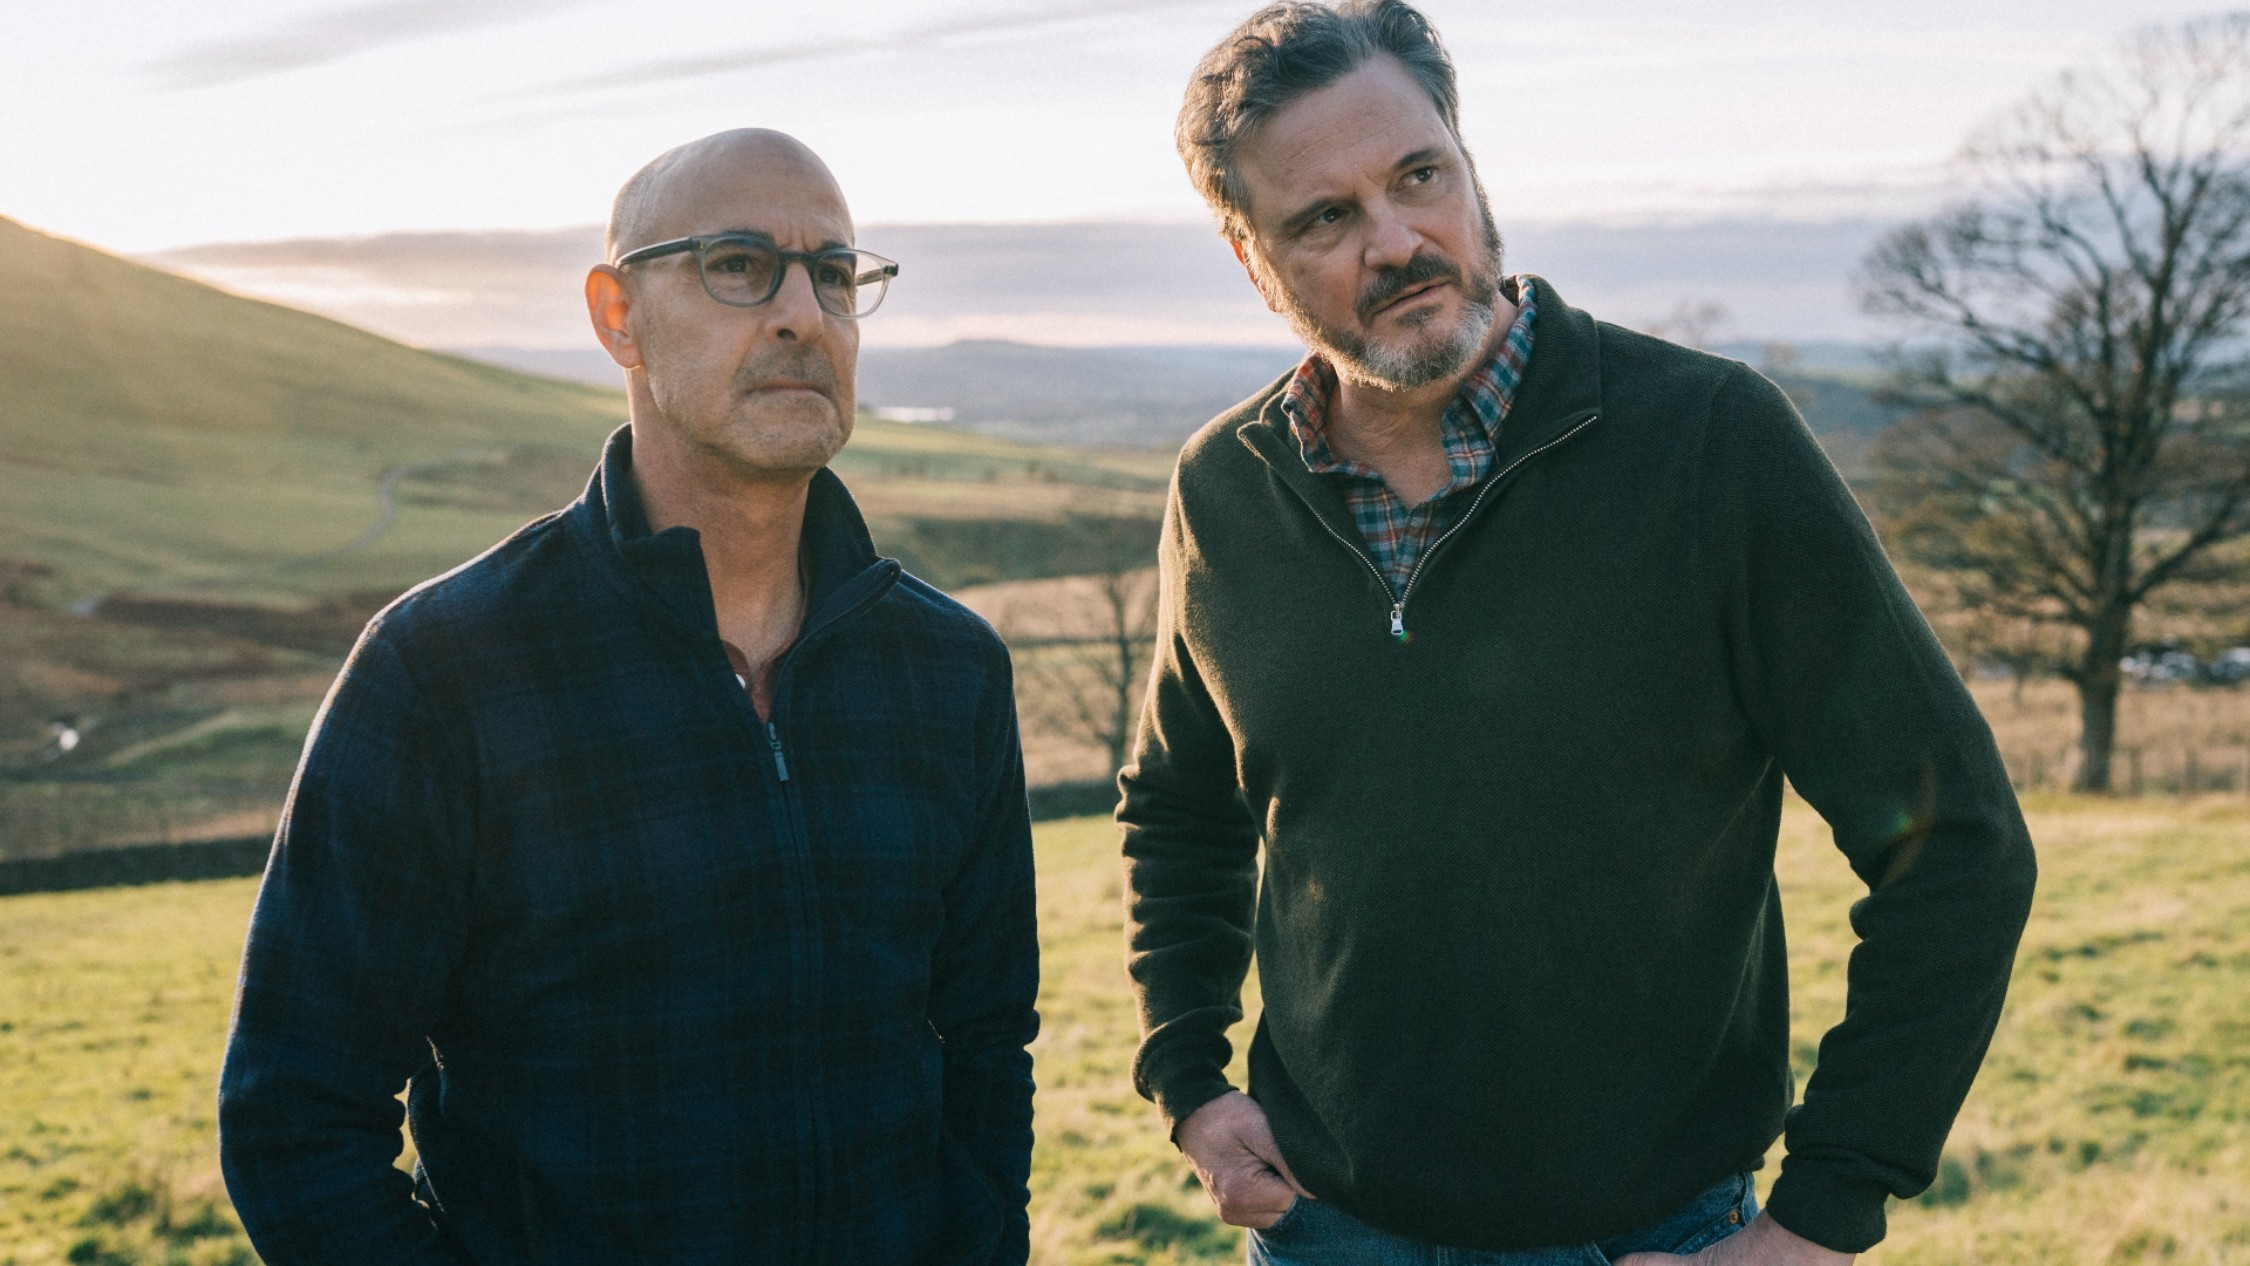 Colin Firth and Stanley Tucci in an English field with rolling hills and trees in Supernova